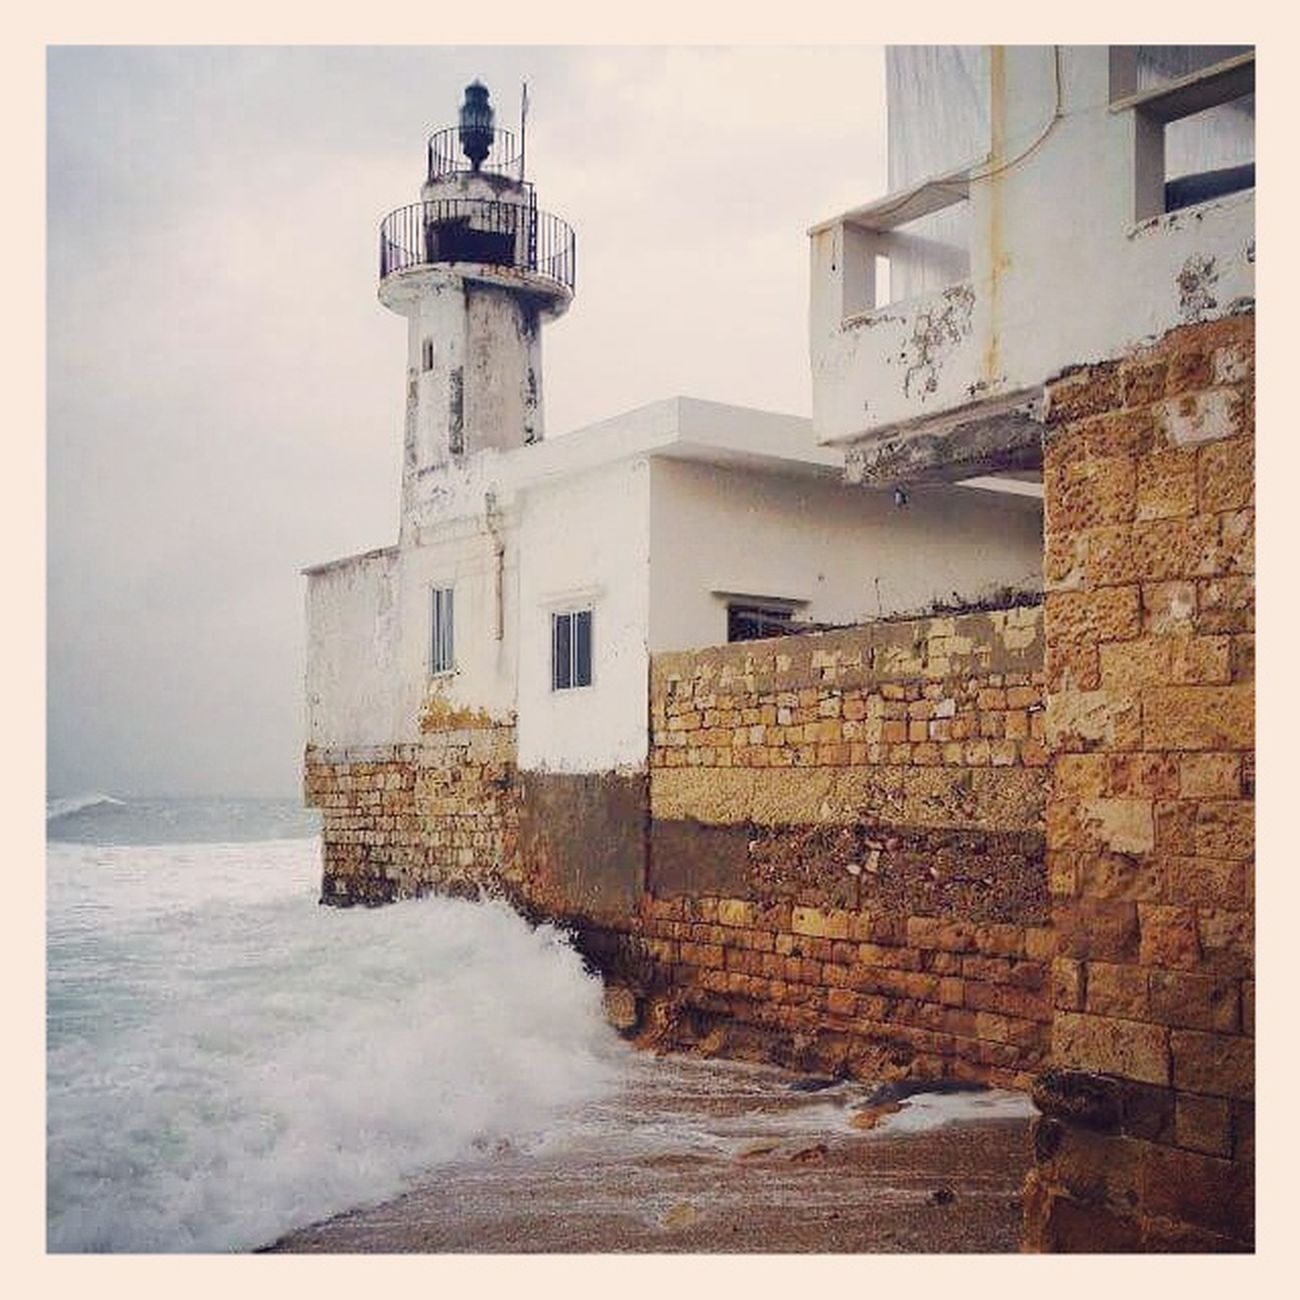 Lighthouse Building Exterior Architecture Travel Destinations Nature Sea Sky Old Buildings Old Town Tyre Sour Lebanon Lebanon In Photos Lebanon_tourism